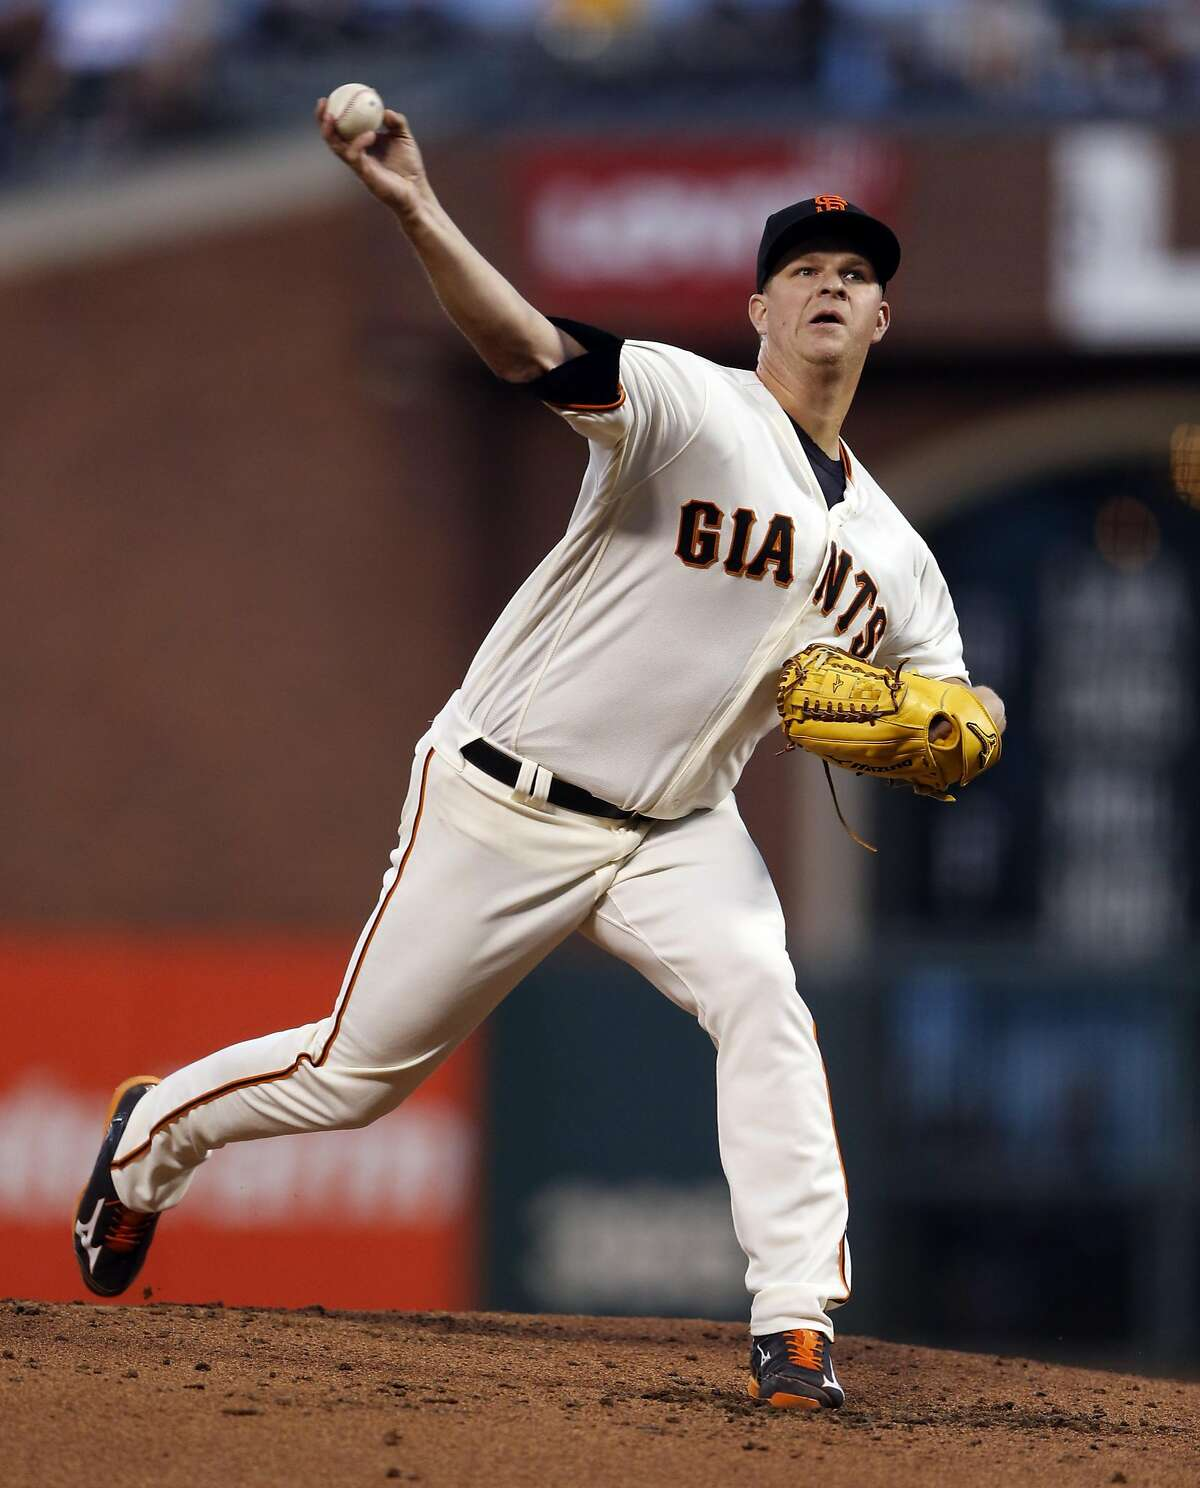 San Francisco Giants' Matt Cain delivers in 2nd inning against Arizona Diamondbacks during MLB game at AT&T Park in San Francisco, Calif., on Tuesday, April 19, 2016.